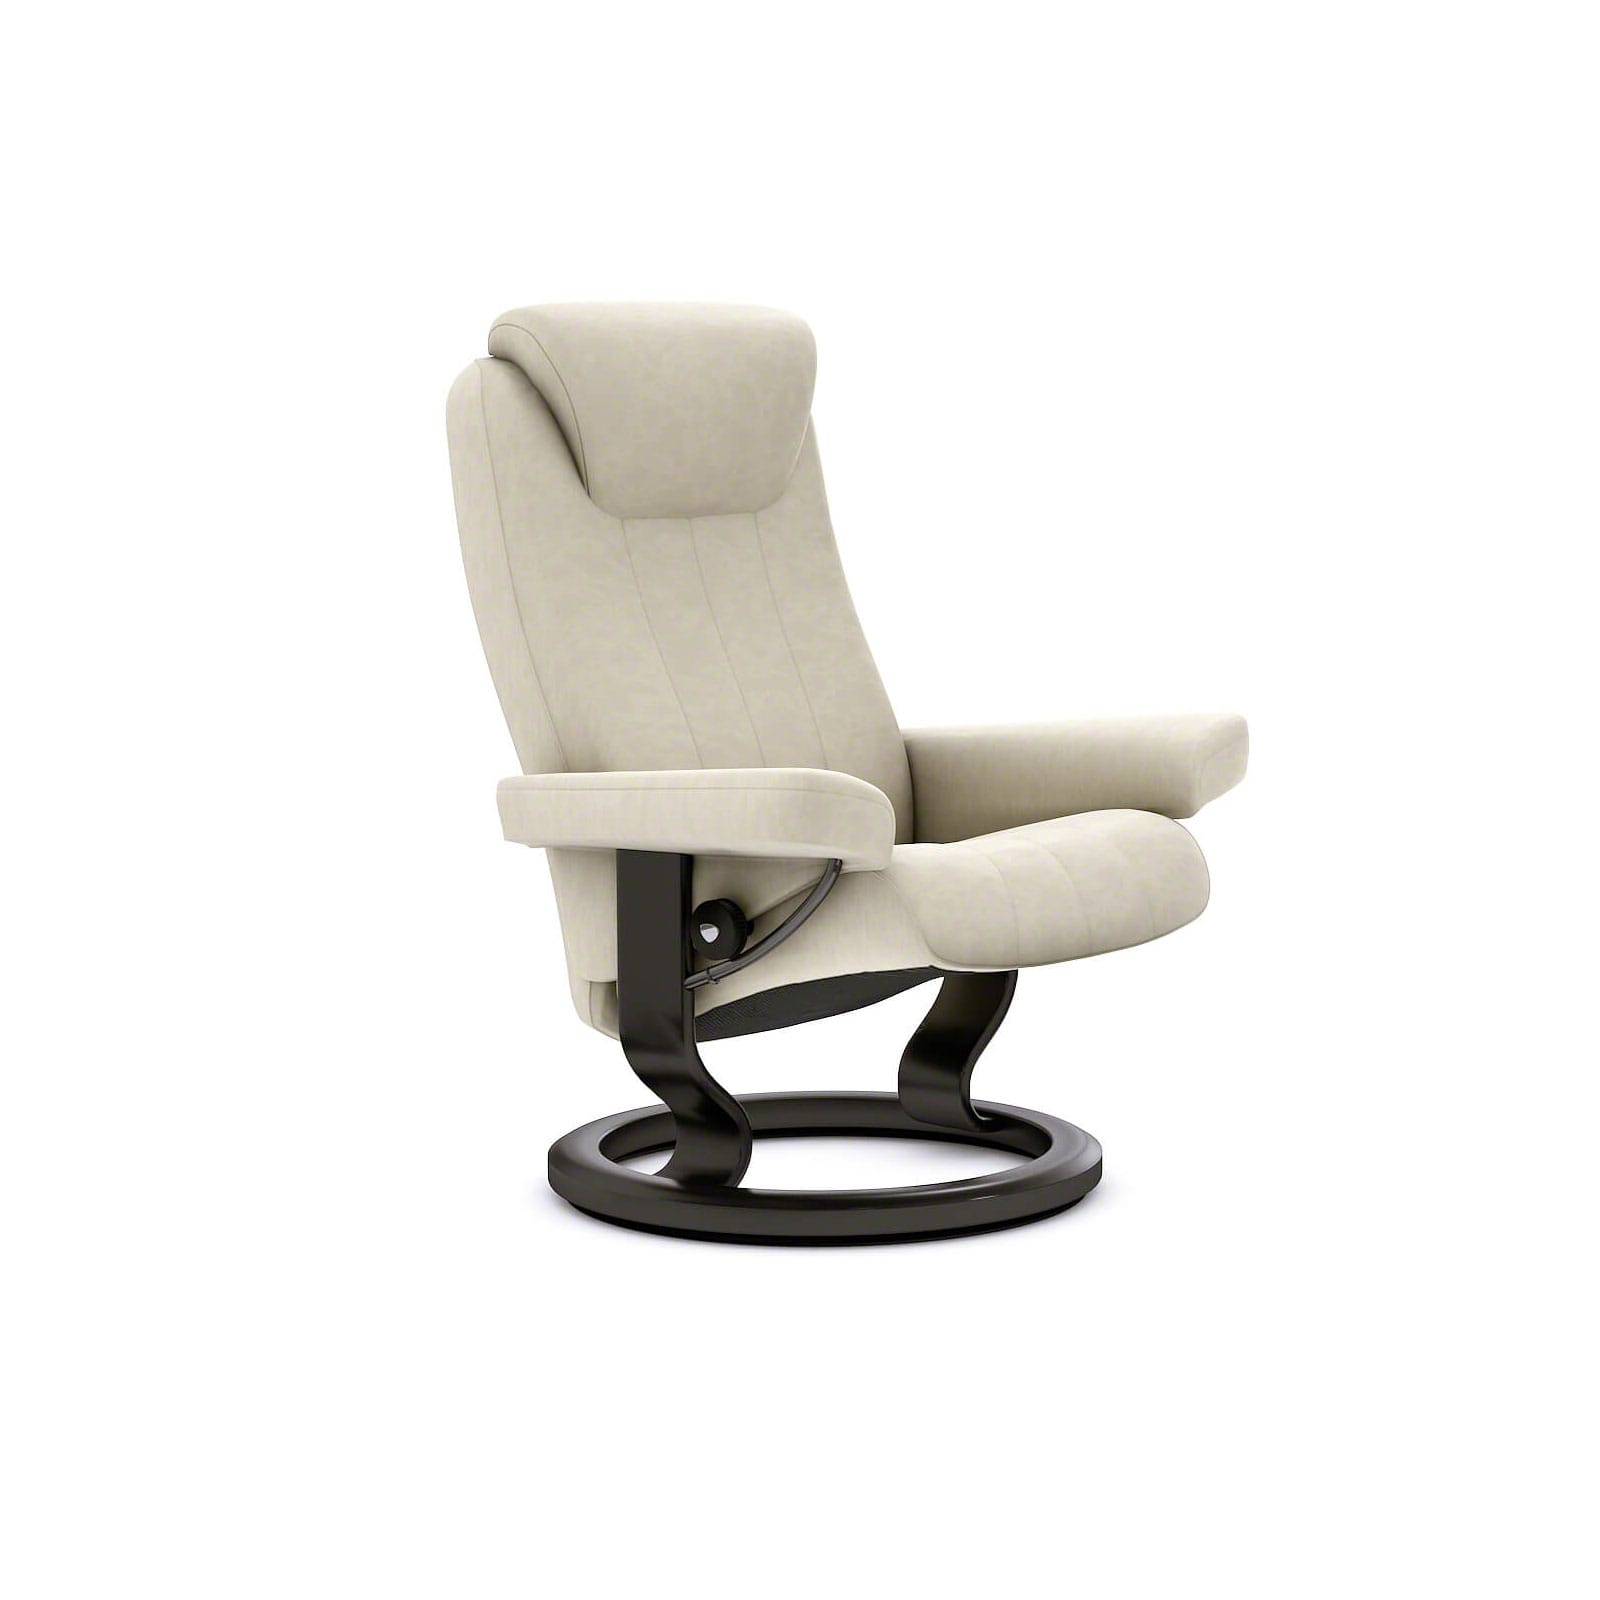 Stressless Sessel Bliss Stressless Bliss Sessel Paloma Light Grey Ohne Hocker Stressless